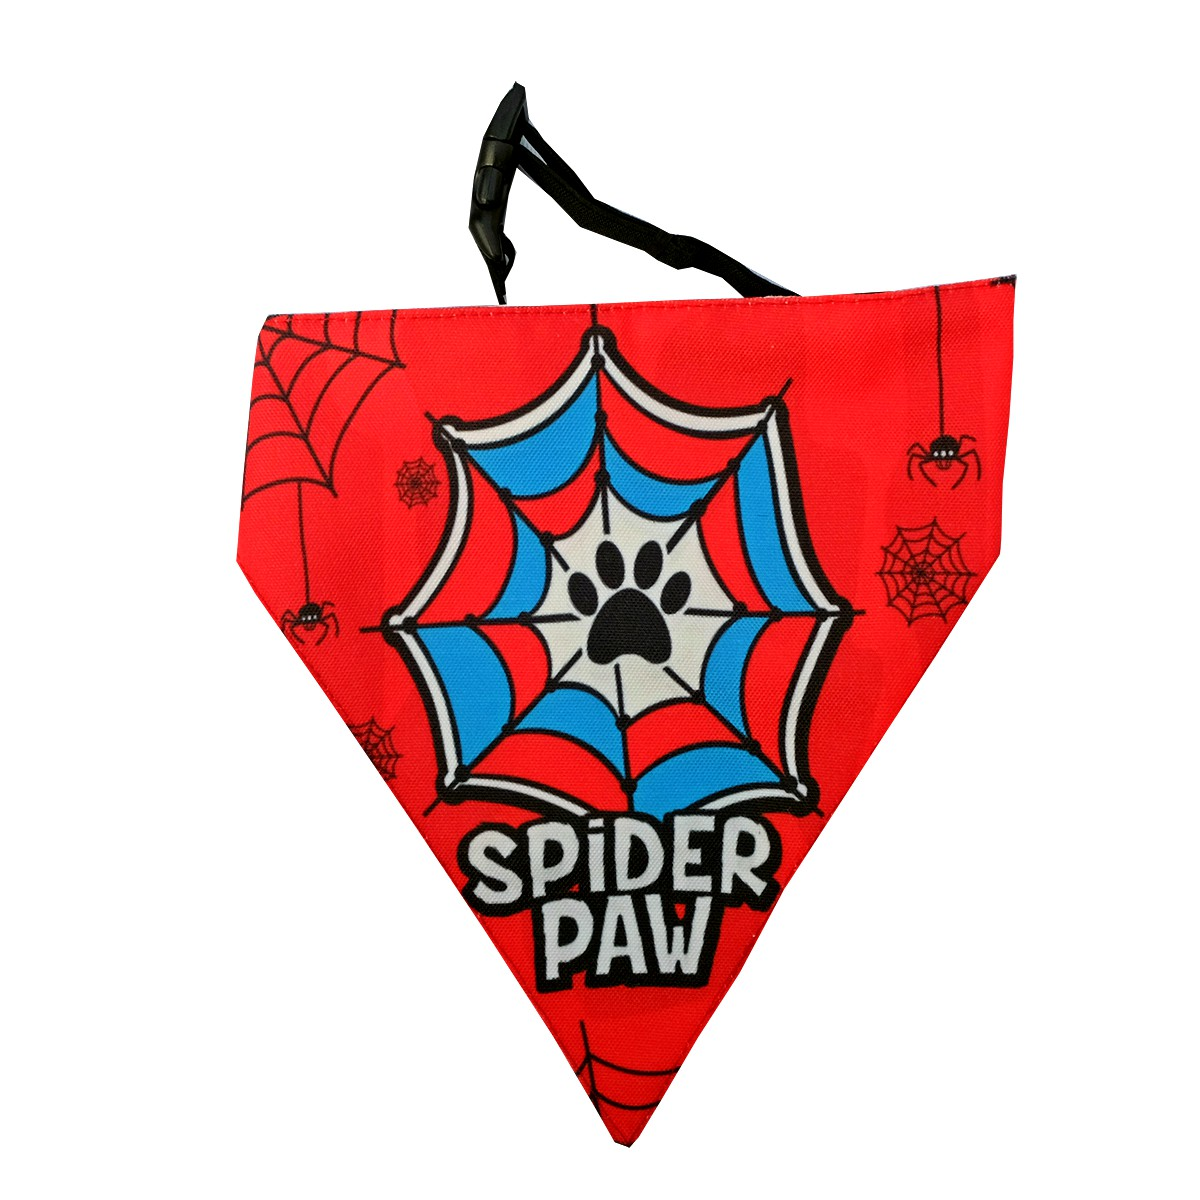 LANA Paws SpiderPaw Adjustable Bandana  -Small & Medium